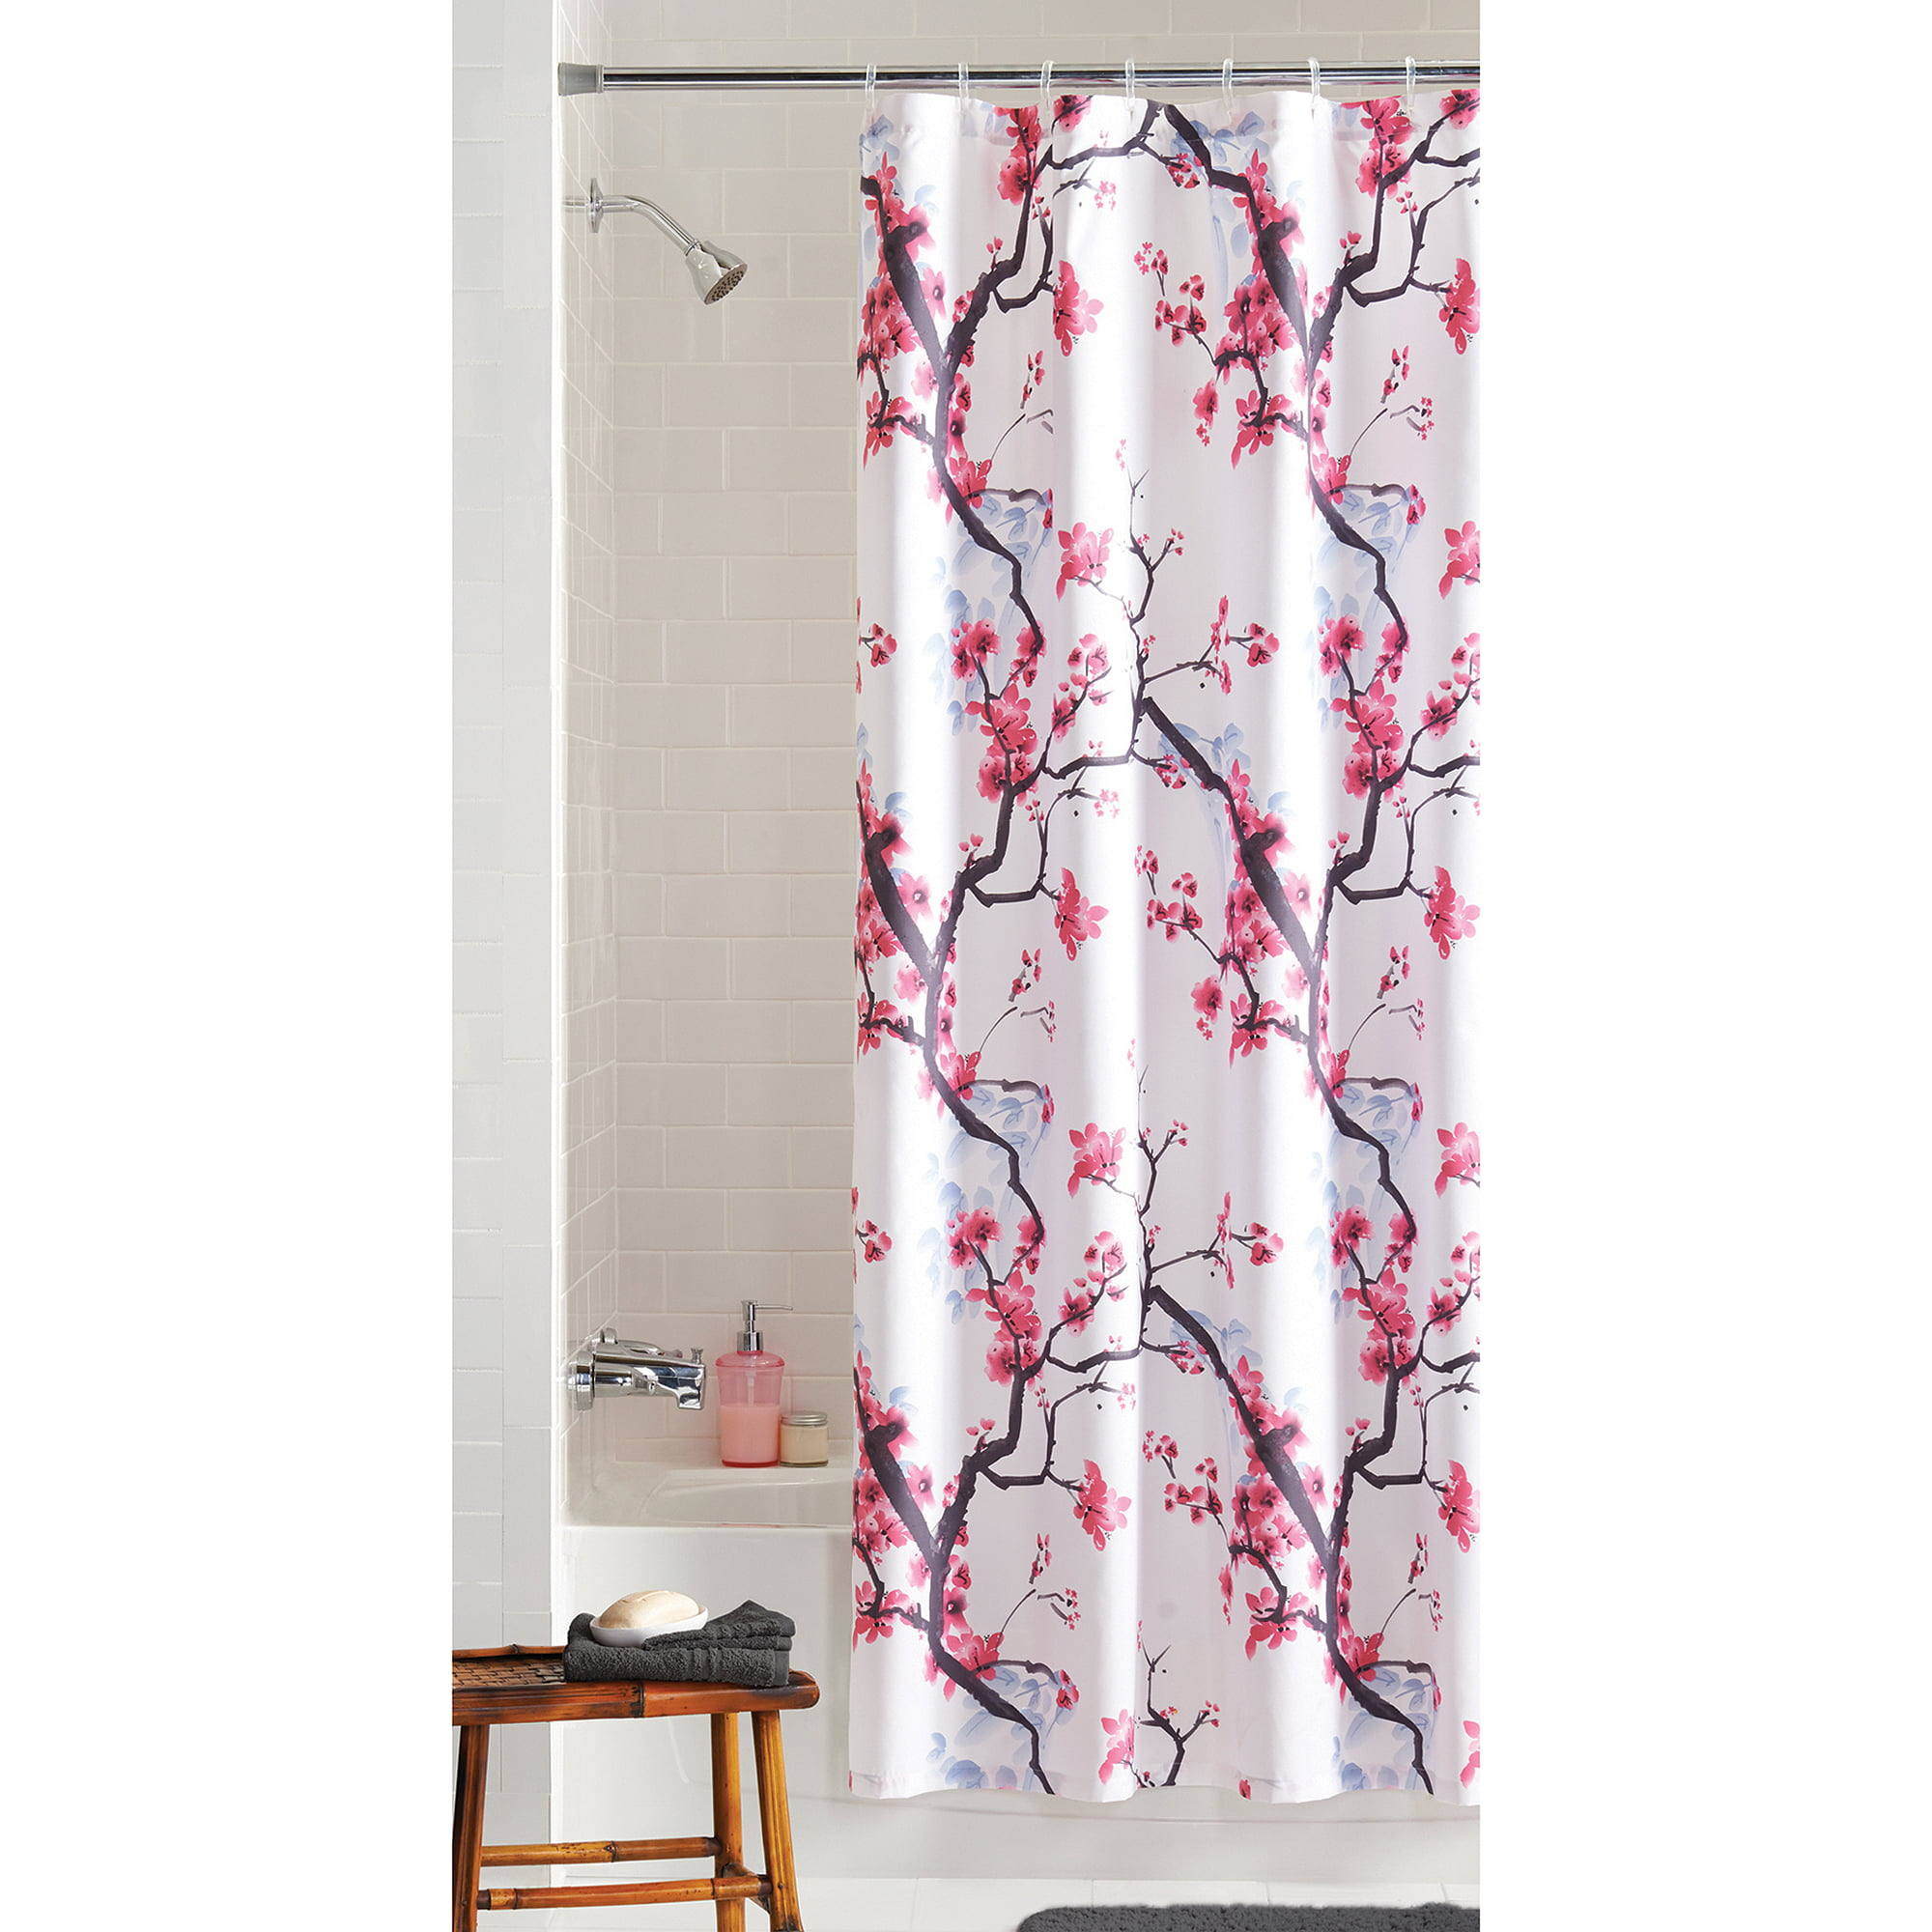 Maytex Pink Blossom Fabric Shower Curtain by Maytex Mills Inc